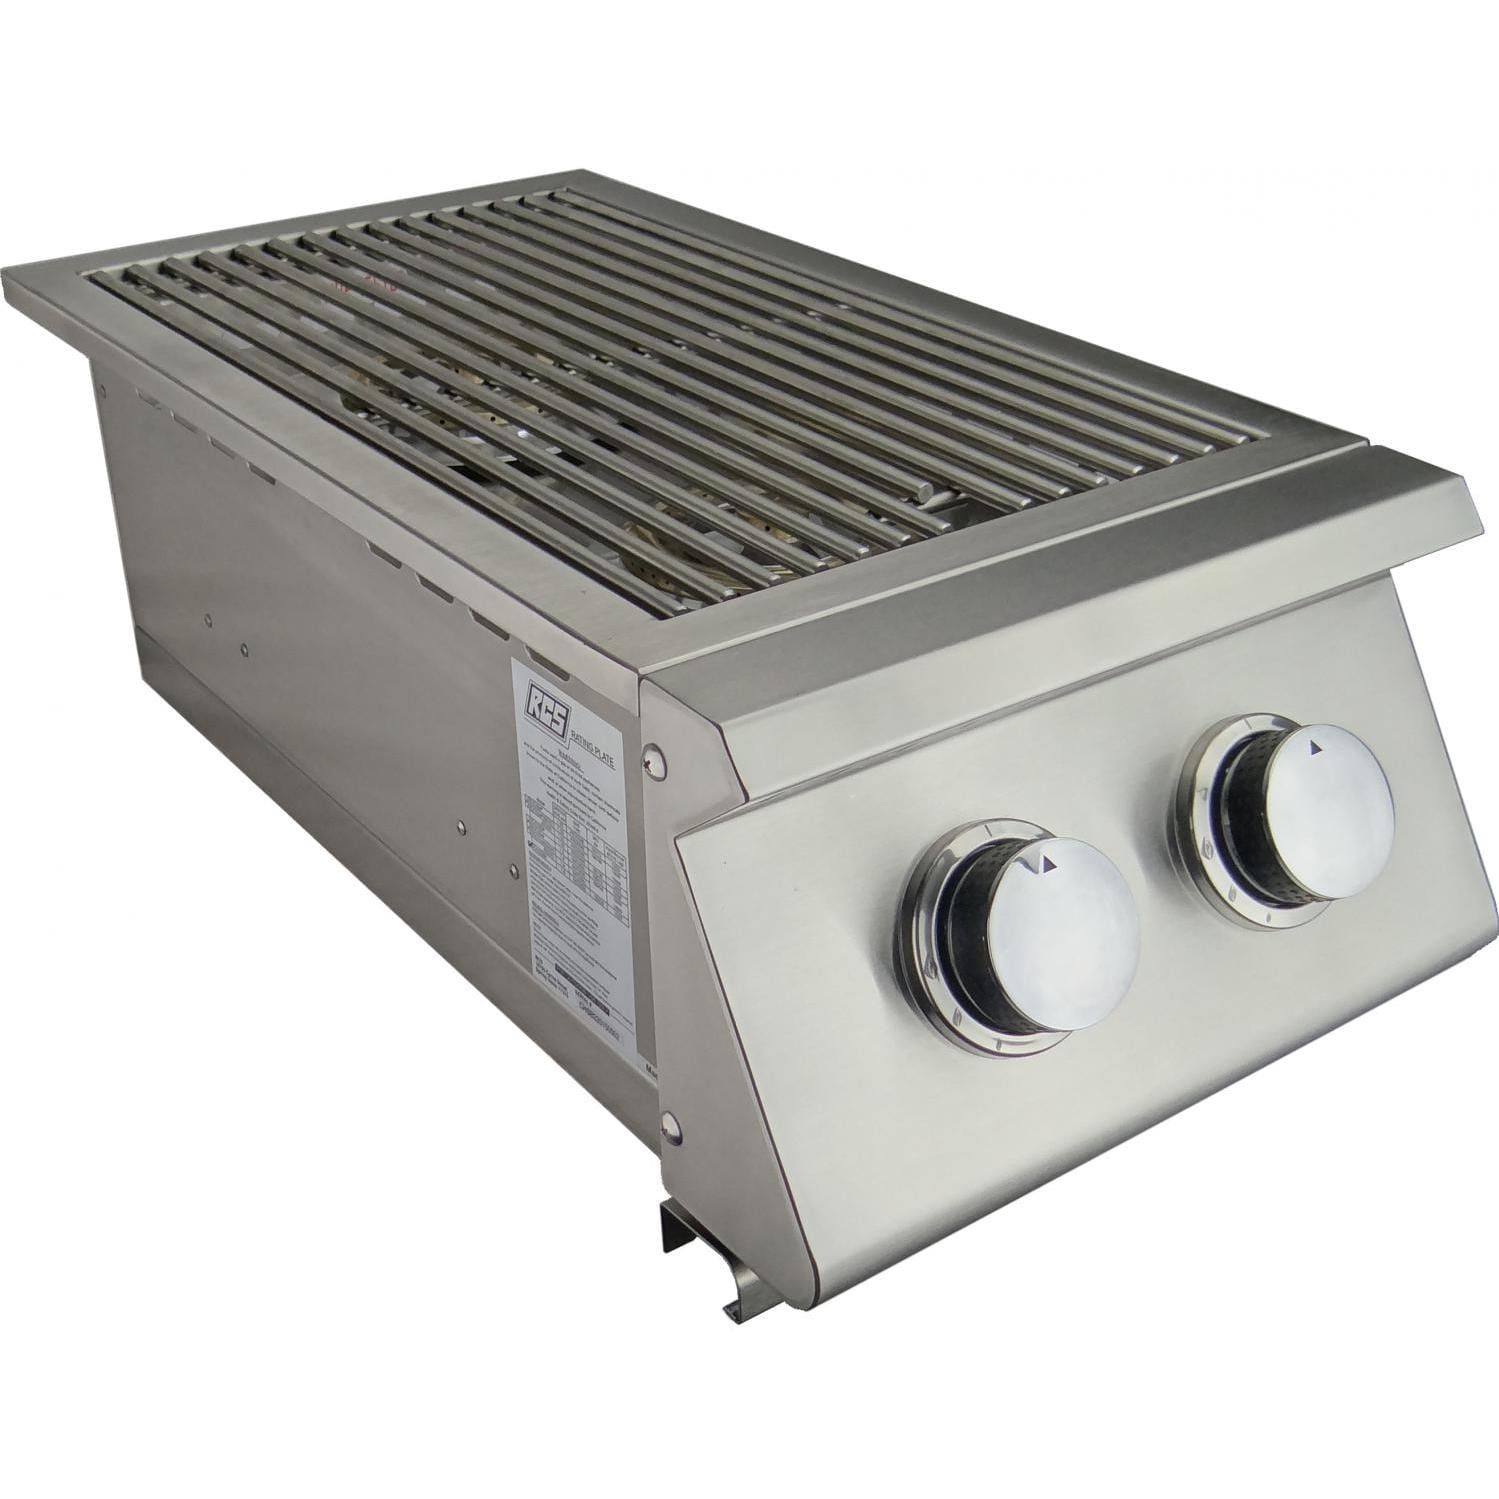 RCS Premier Series Propane Double Side Burner